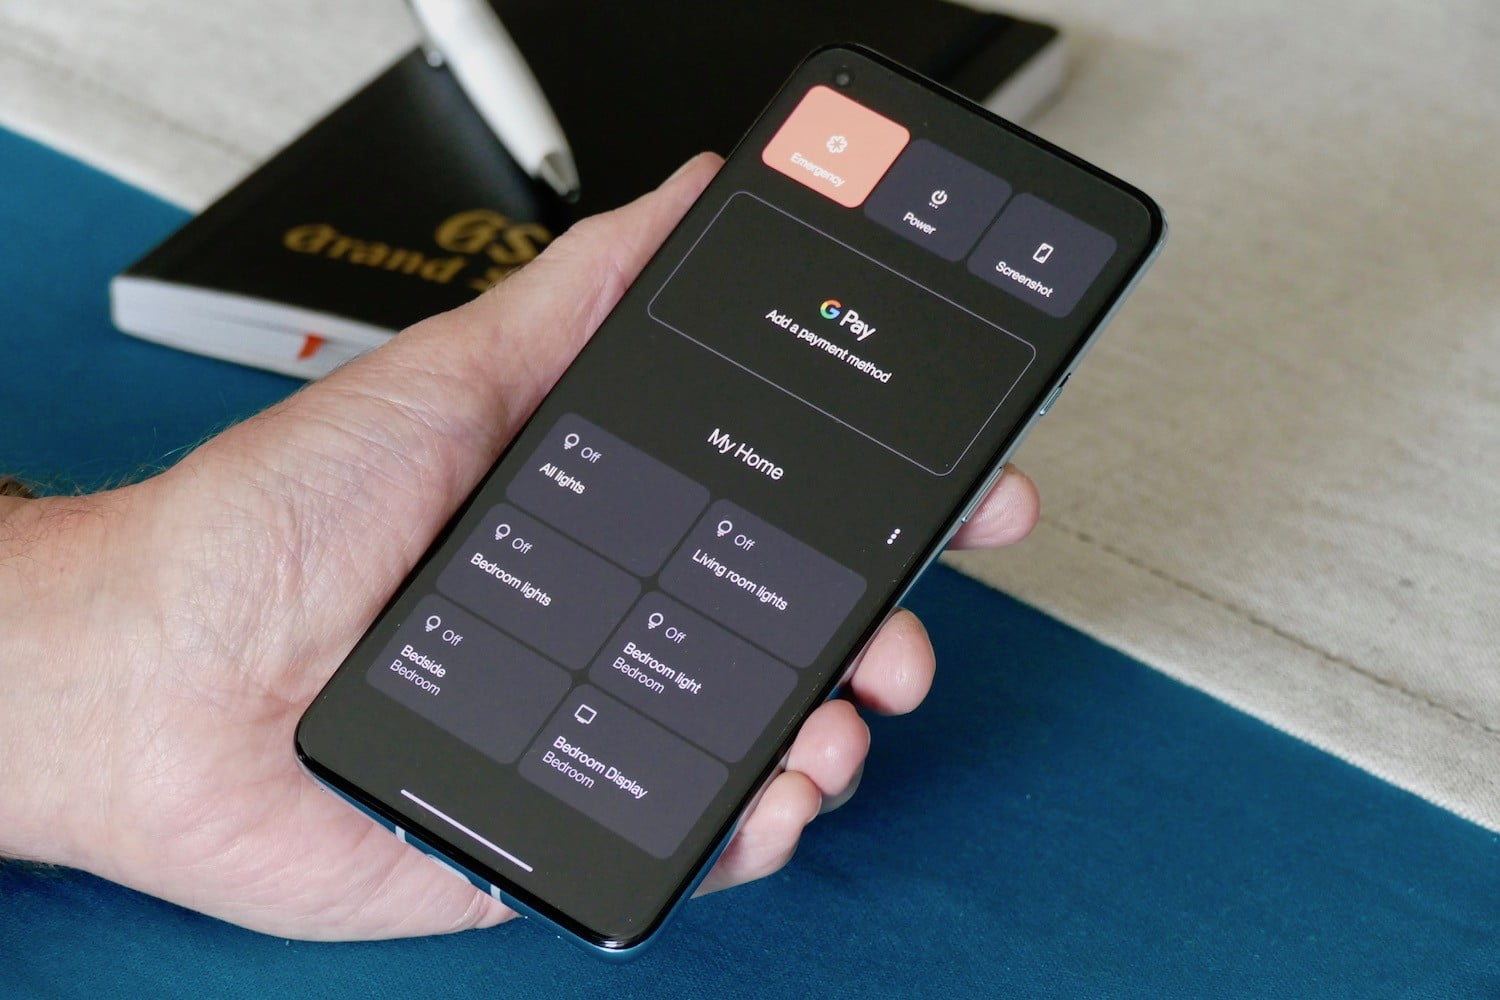 oneplus 8t review android 11 shortcut